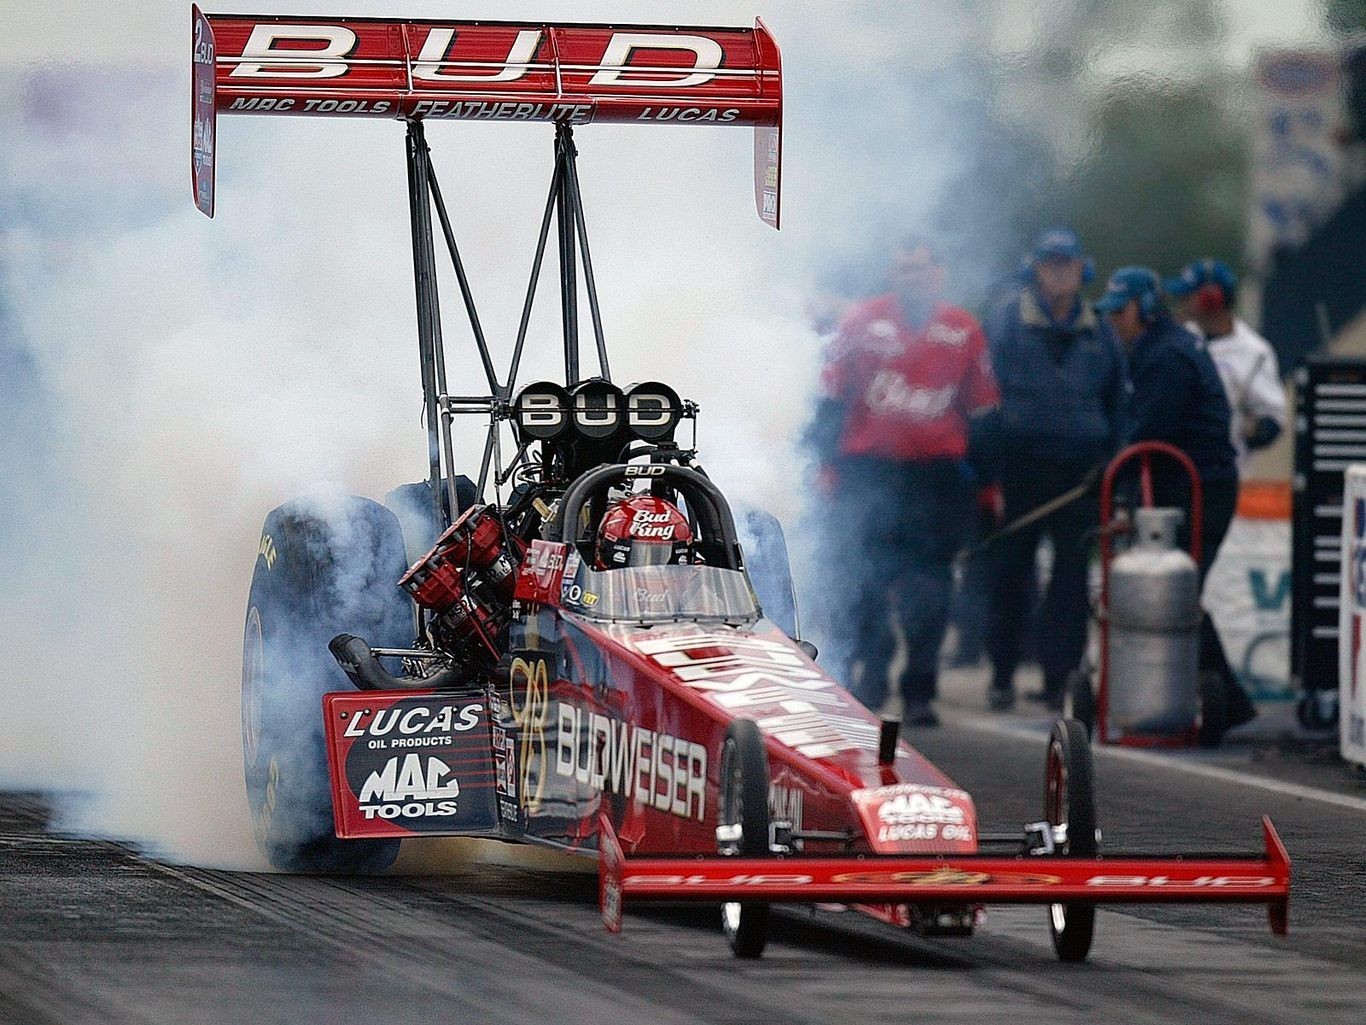 Budweiser Top Fuel Dragster Top Fuel Dragster Drag Racing Cars